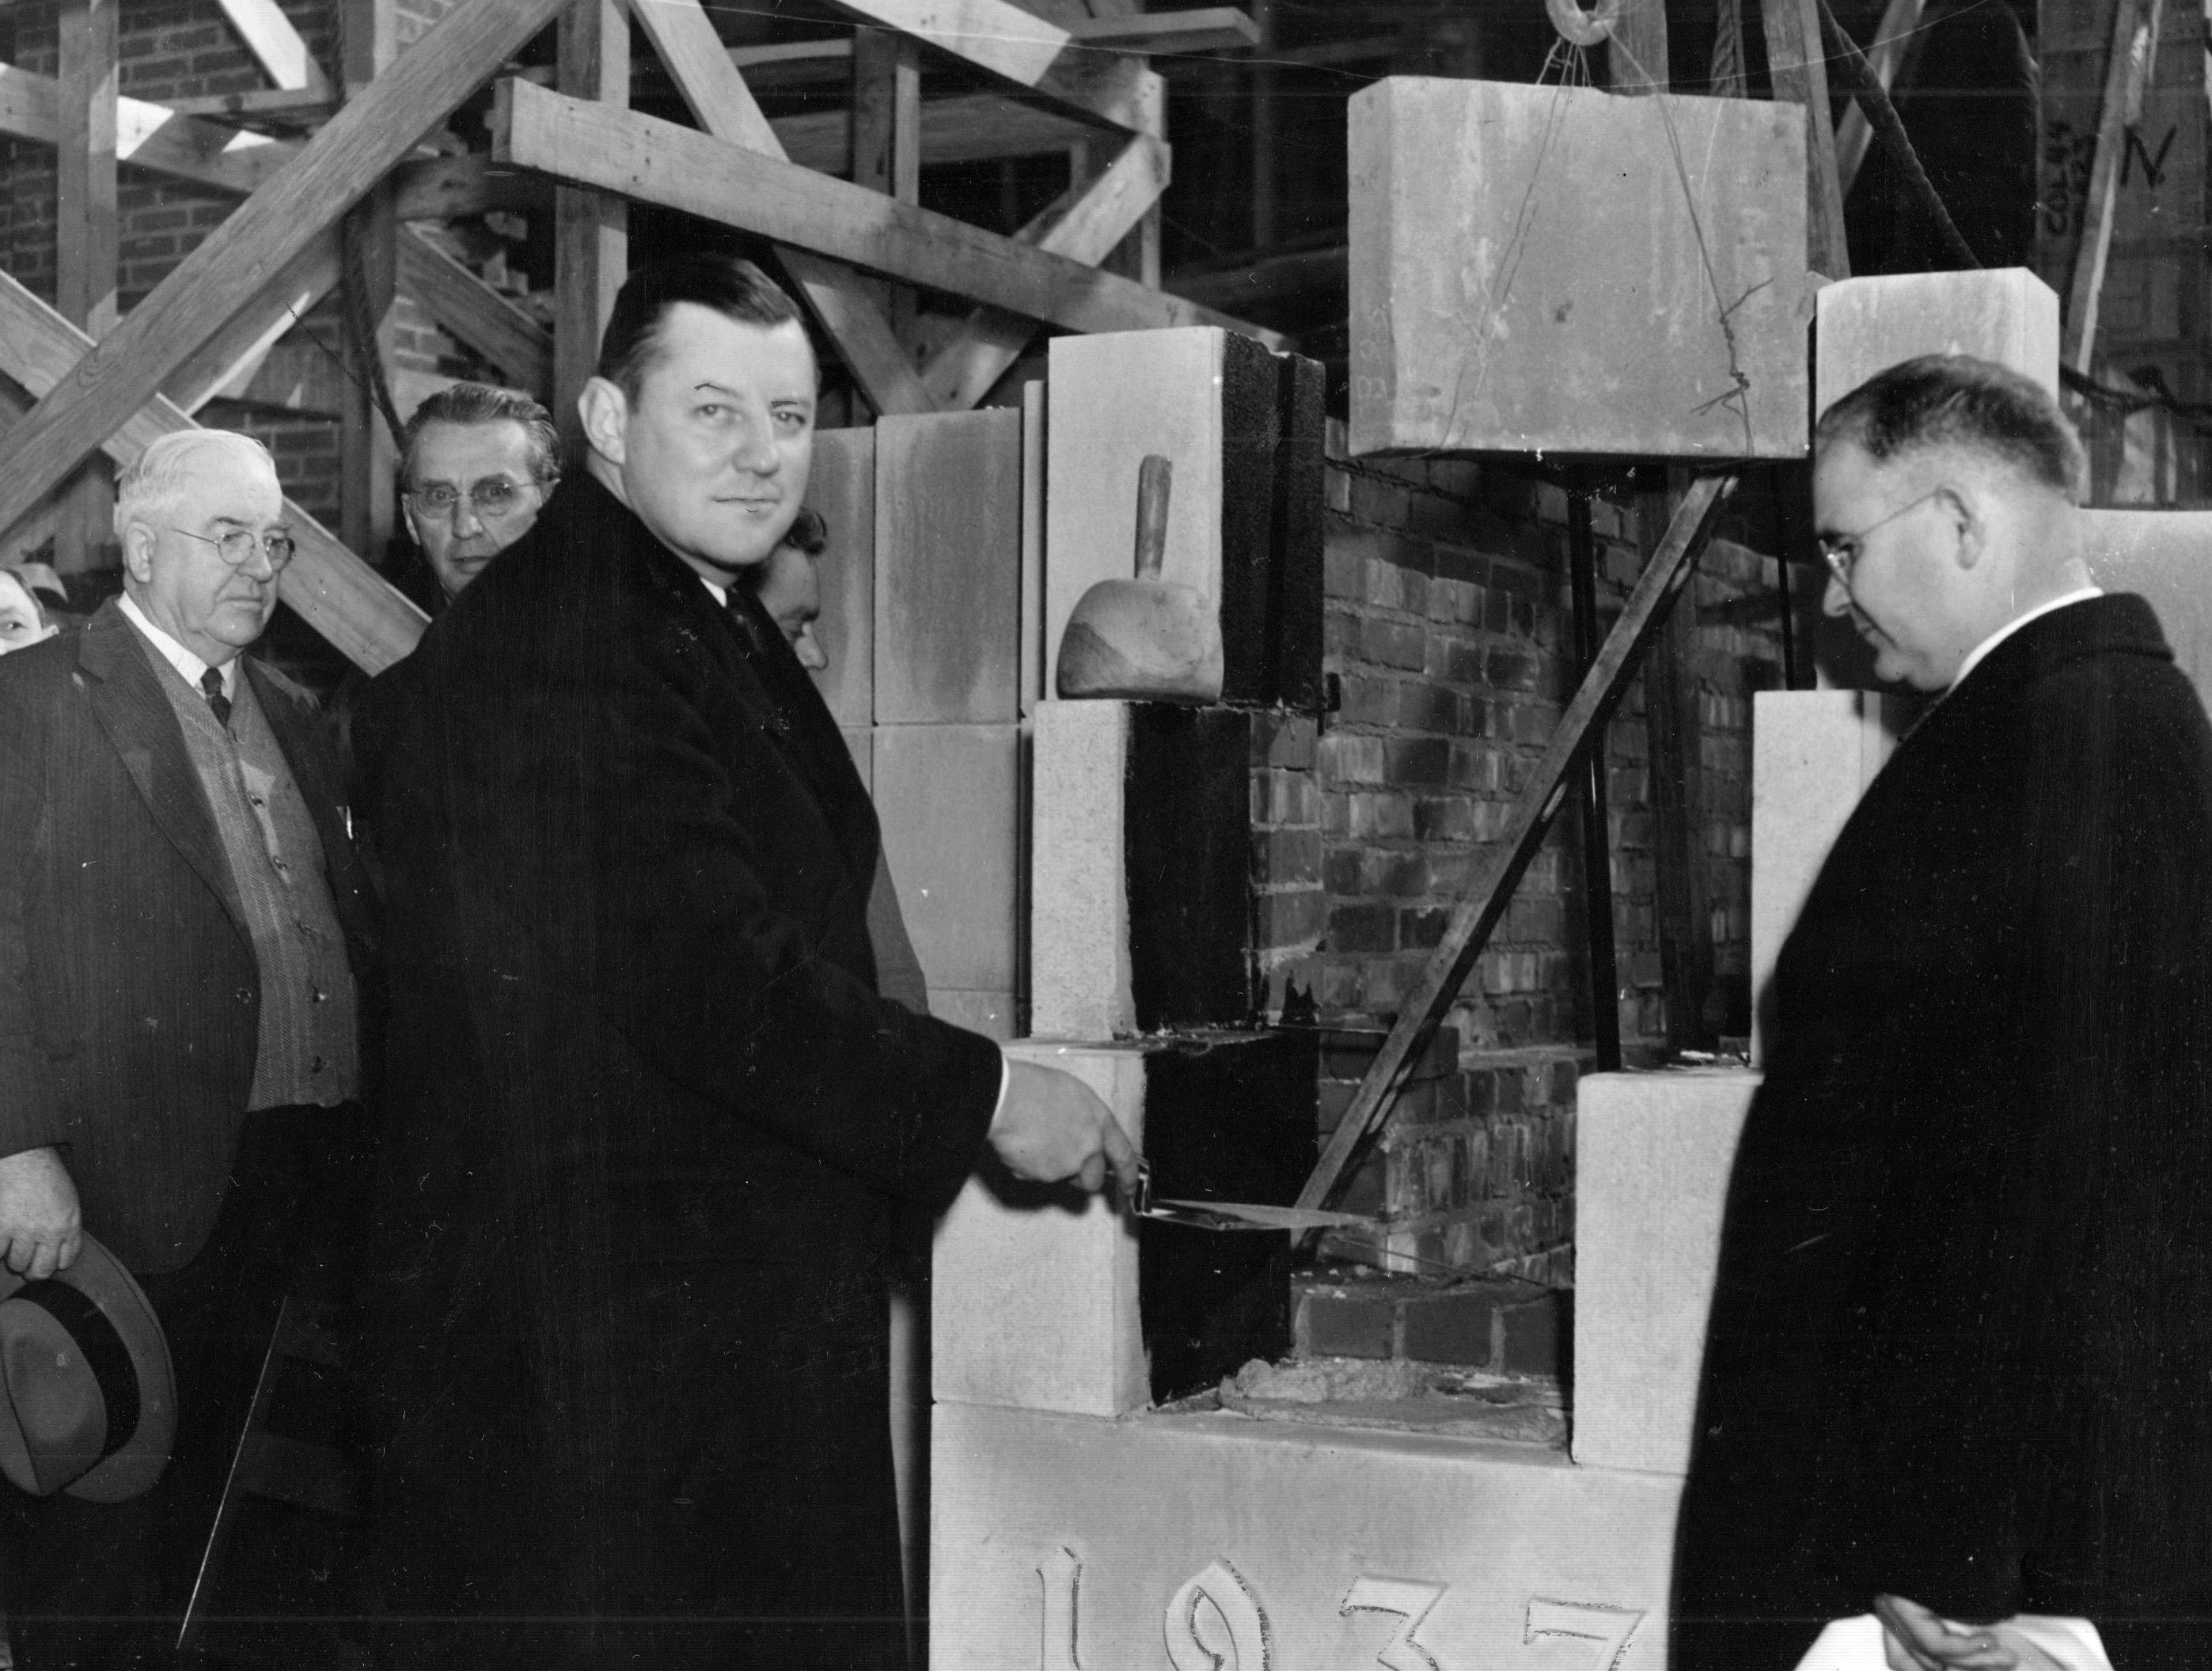 Alan W. Boyd (with trowel), president of the Board fof School commissioners, laying the cornerstone of the Thomas C. Howe High School on Nov. 11, 1937 with DeWitt Morgan, superintendent of schools.